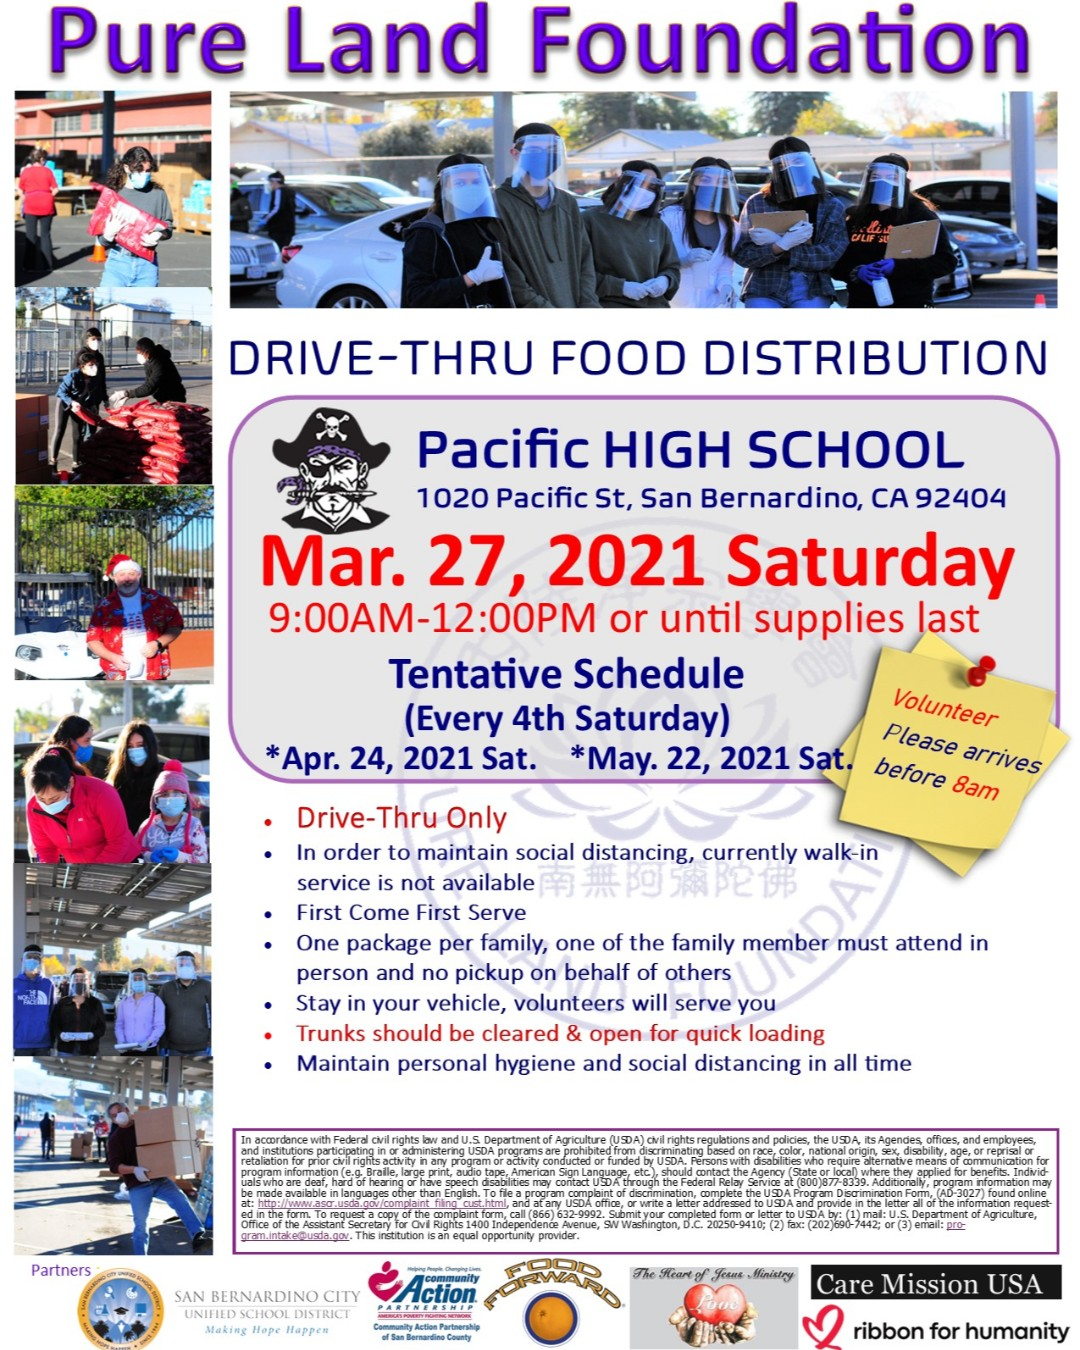 Here comes the flyer for March's Drive-Thru Mobile Food Pantry. Please help to deliver messages to families and volunteers. Date: Saturday, Mar. 27, 2021 9:00AM-12:00PM (Volunteer please arrives before 8am) Location: Pacific High School 1020 Pacific St, San Bernardino, CA 92404 1. Drive-Thru Only. 2. In order to maintain social distancing, currently walk-in service is not available. 3. First Come First Serve. 4. One package per family, one of the family member must attend in person and no pickup on behalf of others. 5. Stay in your vehicle, volunteers will serve you. 6. Trunks should be cleared & open for quick loading. 7. Maintain personal hygiene and social distancing in all time. 8. In advance, we truly appreciate your cooperation and kindness. 9. Volunteers are welcome and please arrive to the site before 8am to help on setup and preparation. 10. ***An important reminder, due to the most current COVID-19 status, please continue maintain your own personal hygiene and follow CDC's advice by wash your hands often, avoid close contact, cover your mouth and nose with a cloth face cover when around others, cover coughs and sneezes, clean and disinfect ..........etc. Protecting yourself and others starts with personal hygiene. *** 11. Should you have any question, please feel free to contact Andrew Lin (adm@PureLand.Foundation) 12. Let's continue to deliver Love and Care to our community and make hope happen again. ***An important reminder, due to the most current COVID-19 status, please continue to maintain your own personal hygiene and follow CDC's advice by wash your hands often, avoid close contact, cover your mouth and nose with a cloth face cover when around others, cover coughs and sneezes, clean and disinfect ..........etc. Protecting yourself and others starts with personal hygiene. *** Volunteers are welcome and please arrive before 8 am to help with setup and preparation. Should you have any question, please feel free to contact Andrew Lin (adm@PureLand.Foundation) Let's make hope happen again. Thank you so much. Meanwhile, please continue to stay healthy, be safe and be happy. See you soon.